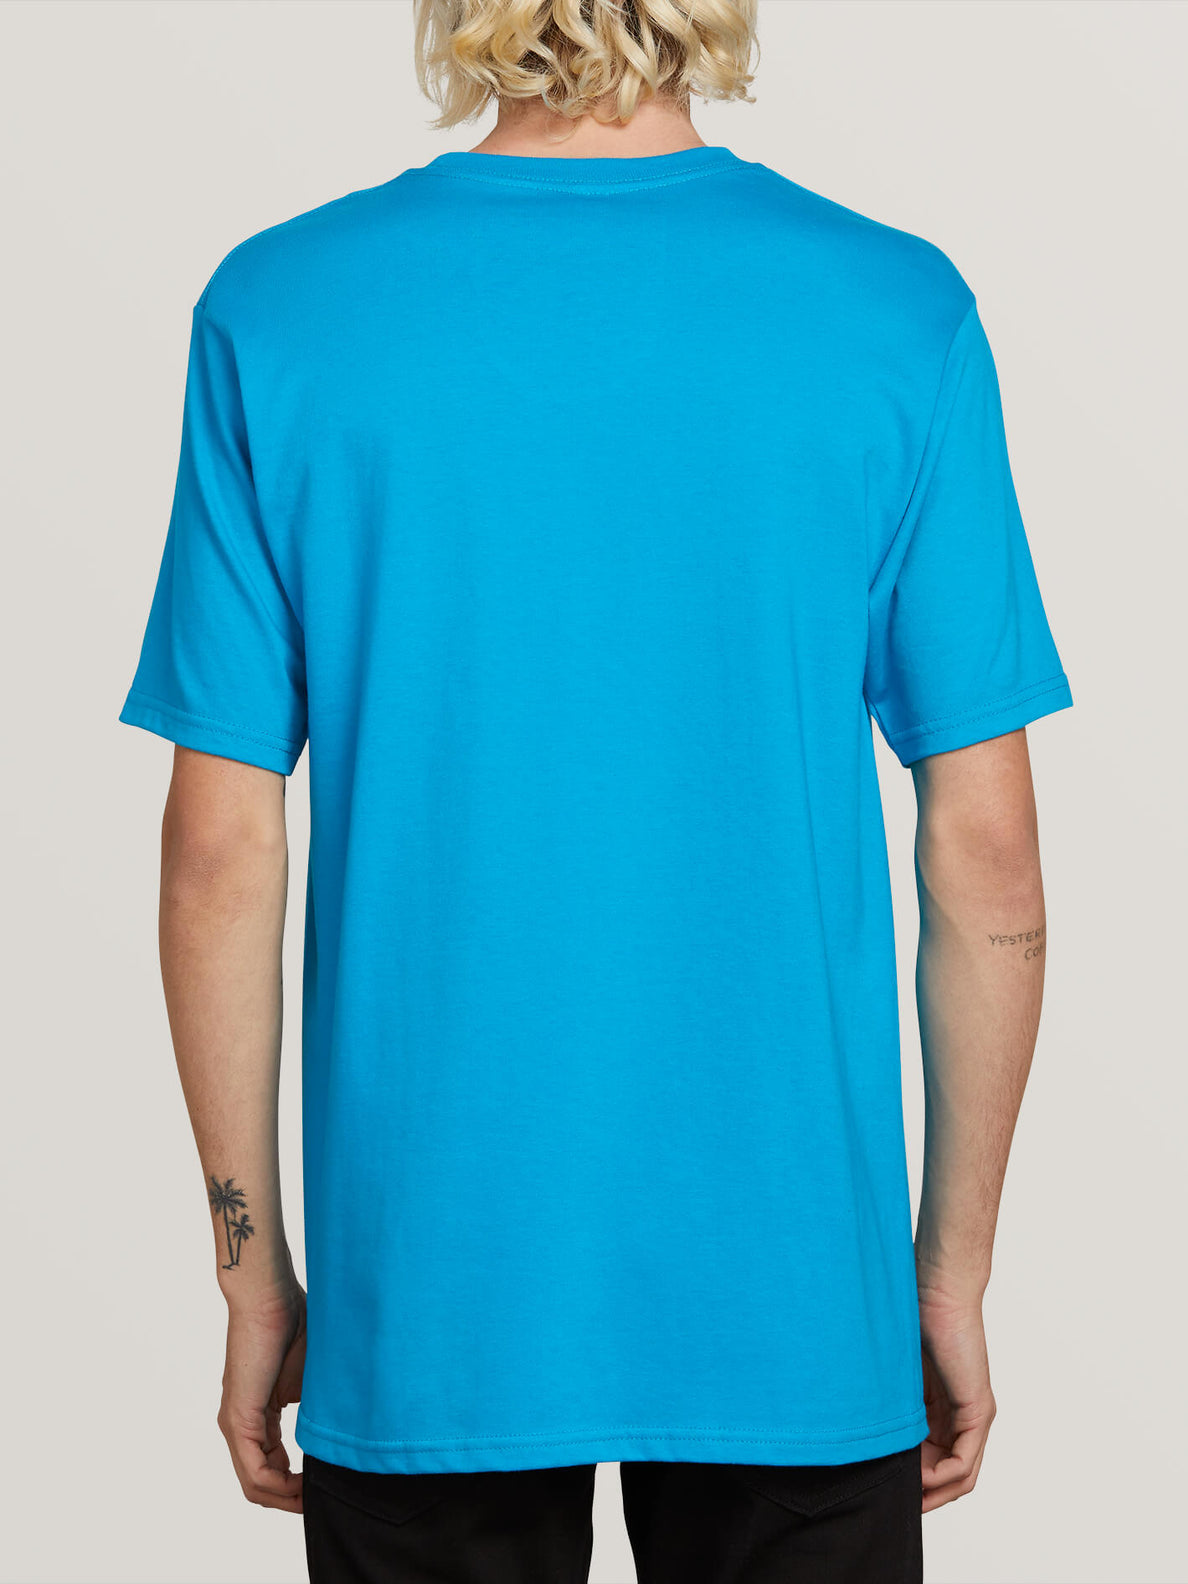 Winged Peace Short Sleeve Pocket Tee In Bright Blue, Back View